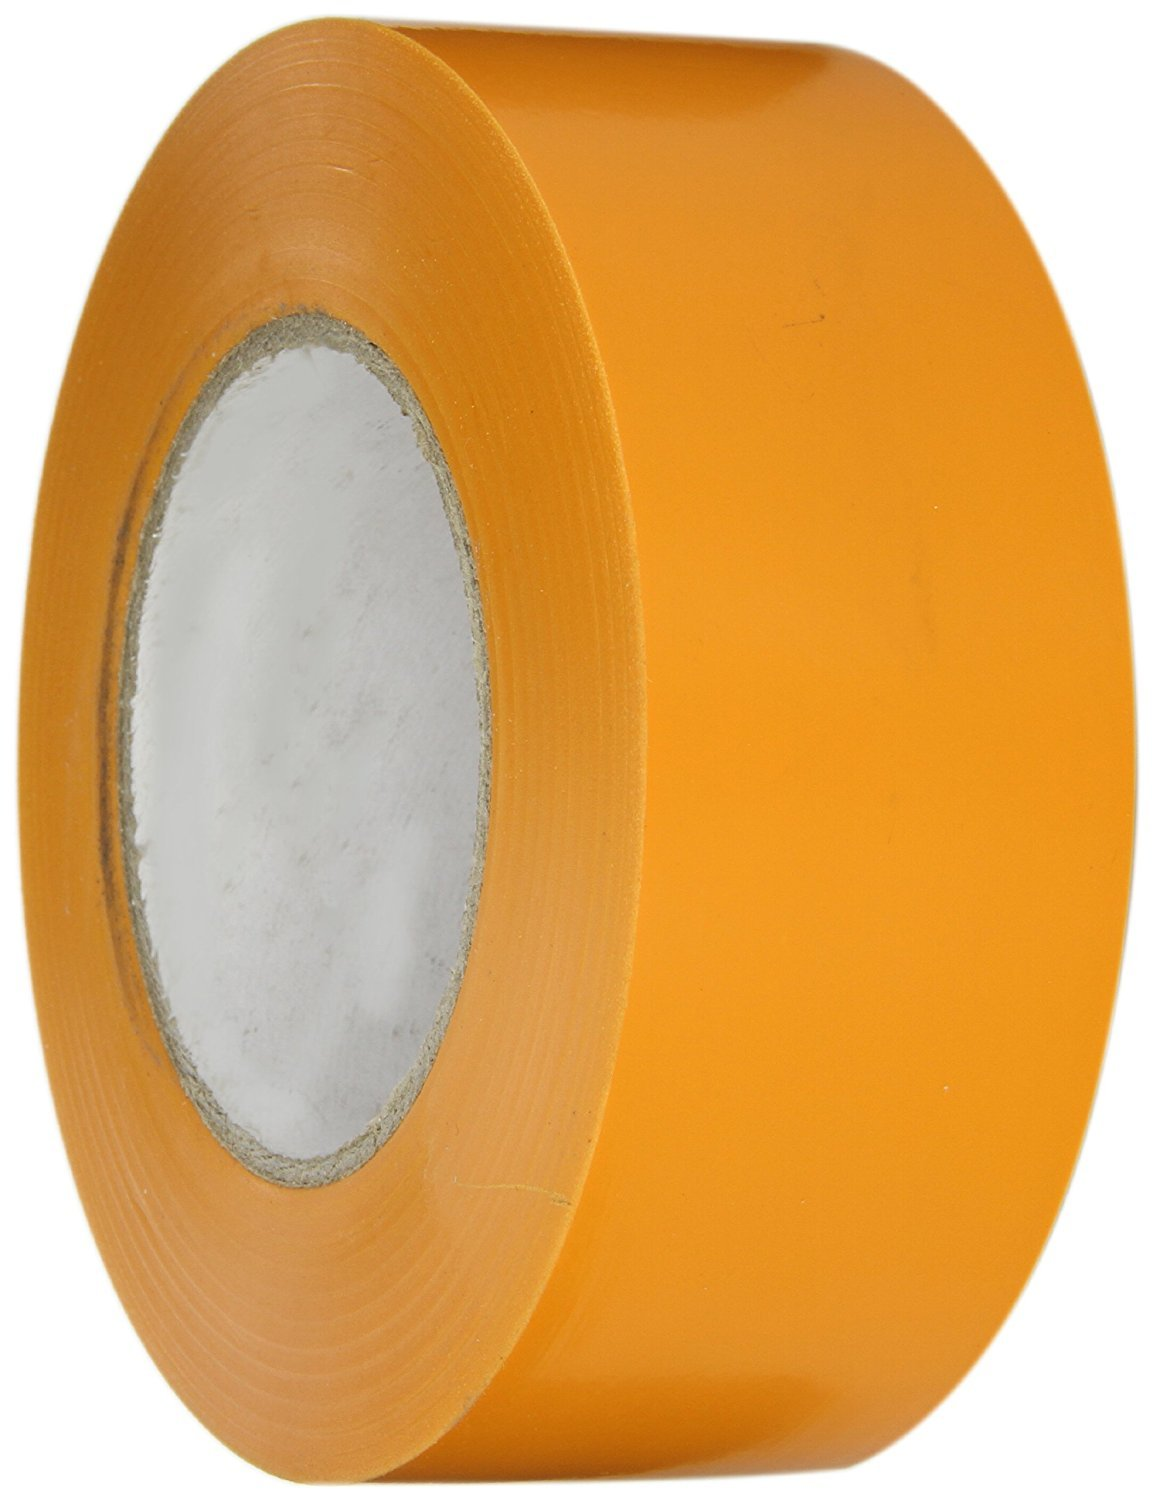 Sportime Vinyl Gym Floor Marking Tape - 2 inch x 60 yards - Assorted Colors - Sold per EACH (Oragne)